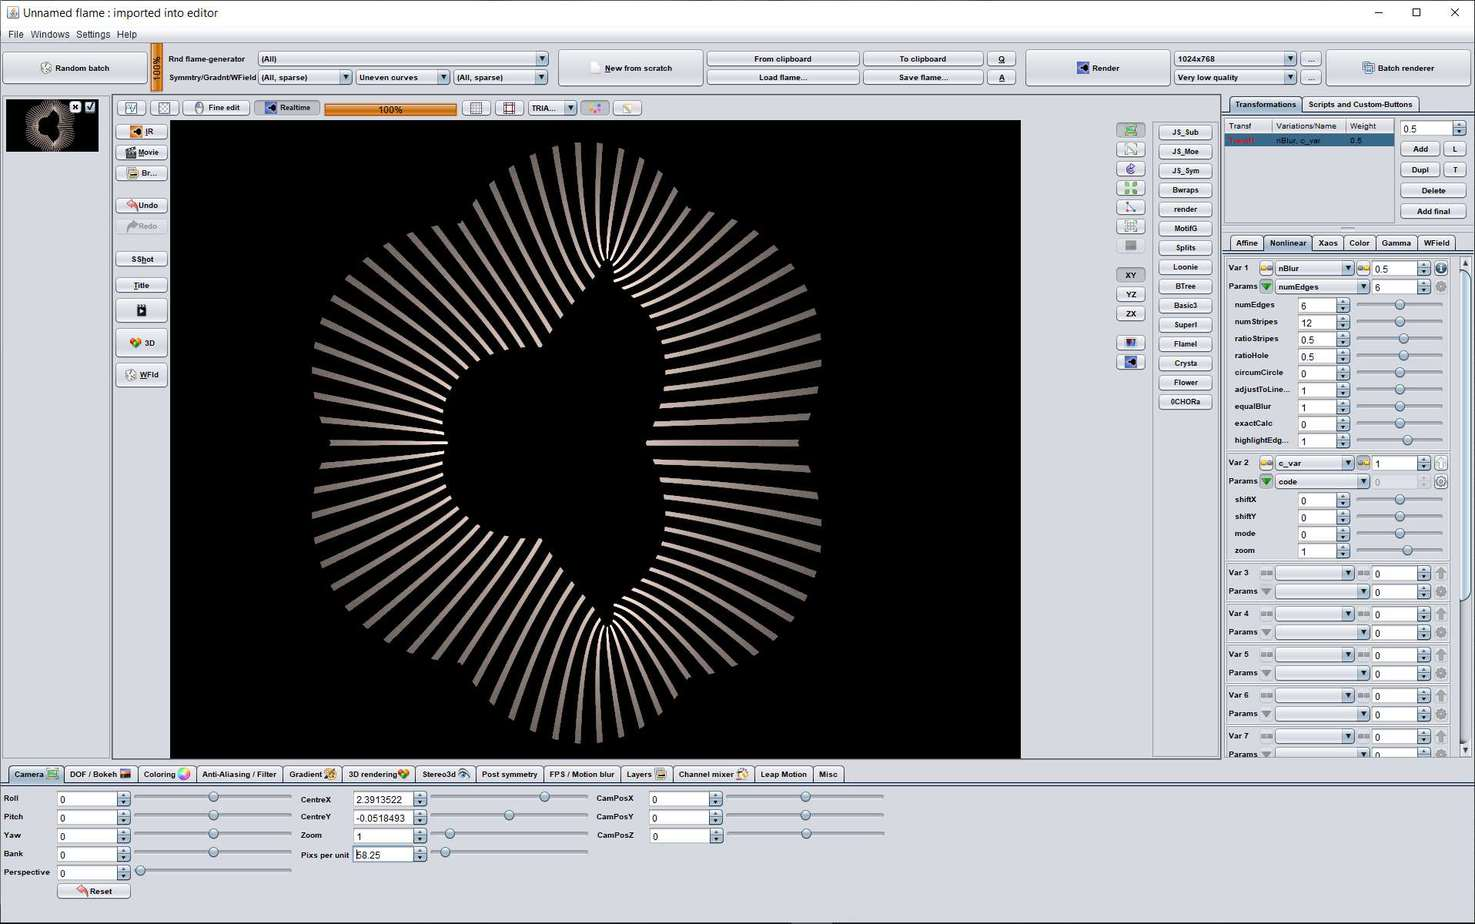 image 001 | Complex Numbers Operations for c_var & cut_c variations - Jesus Sosa